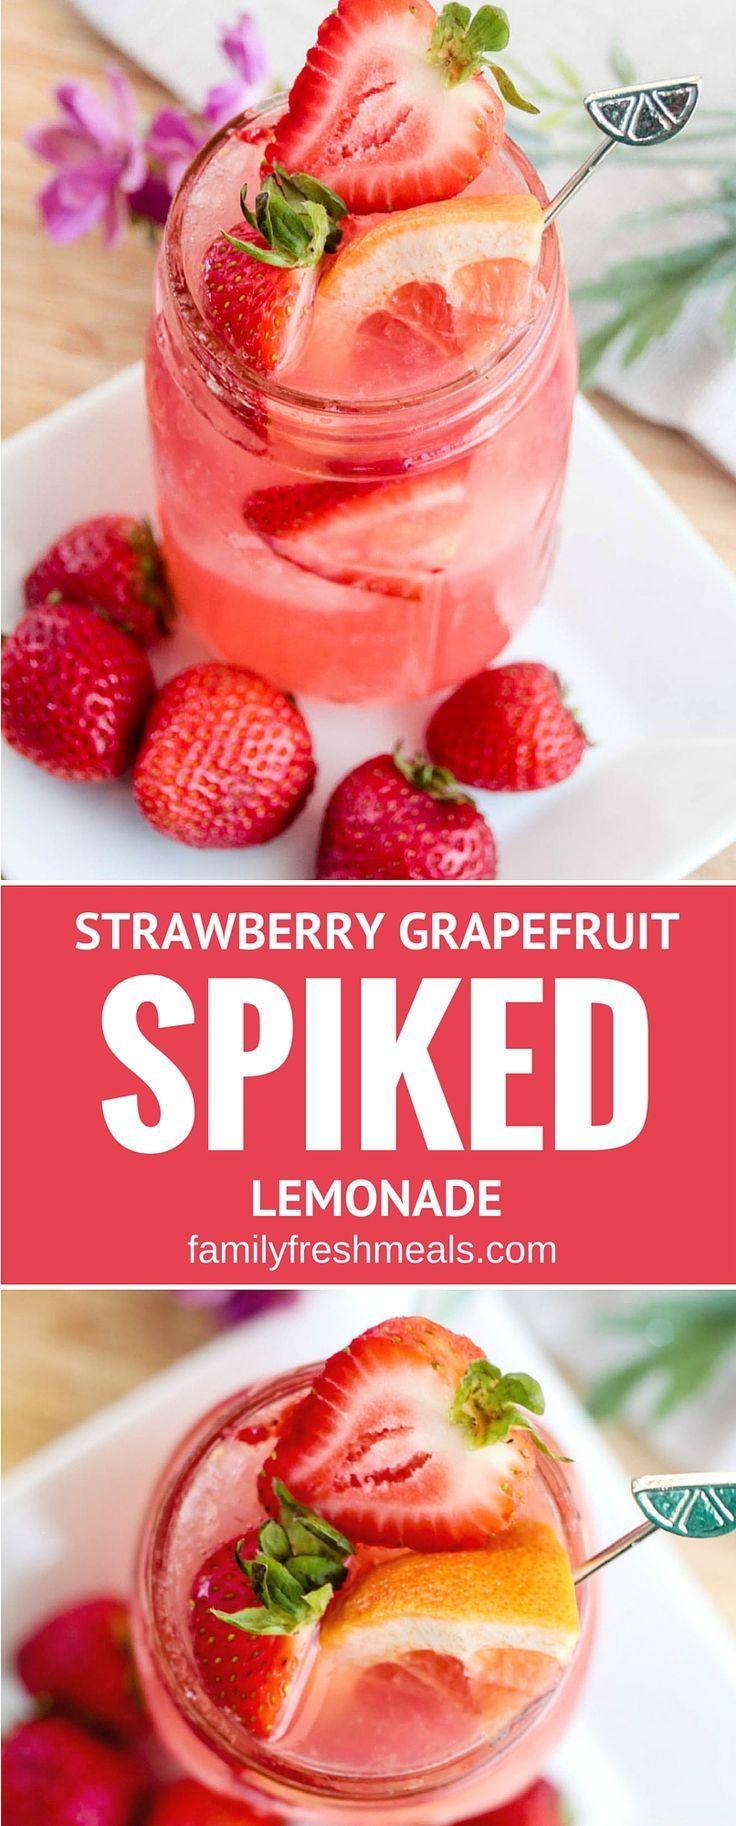 Strawberry Grapefruit Spiked Lemonade - http://FamilyFreshMeals.com - Refreshing Drink for summer!